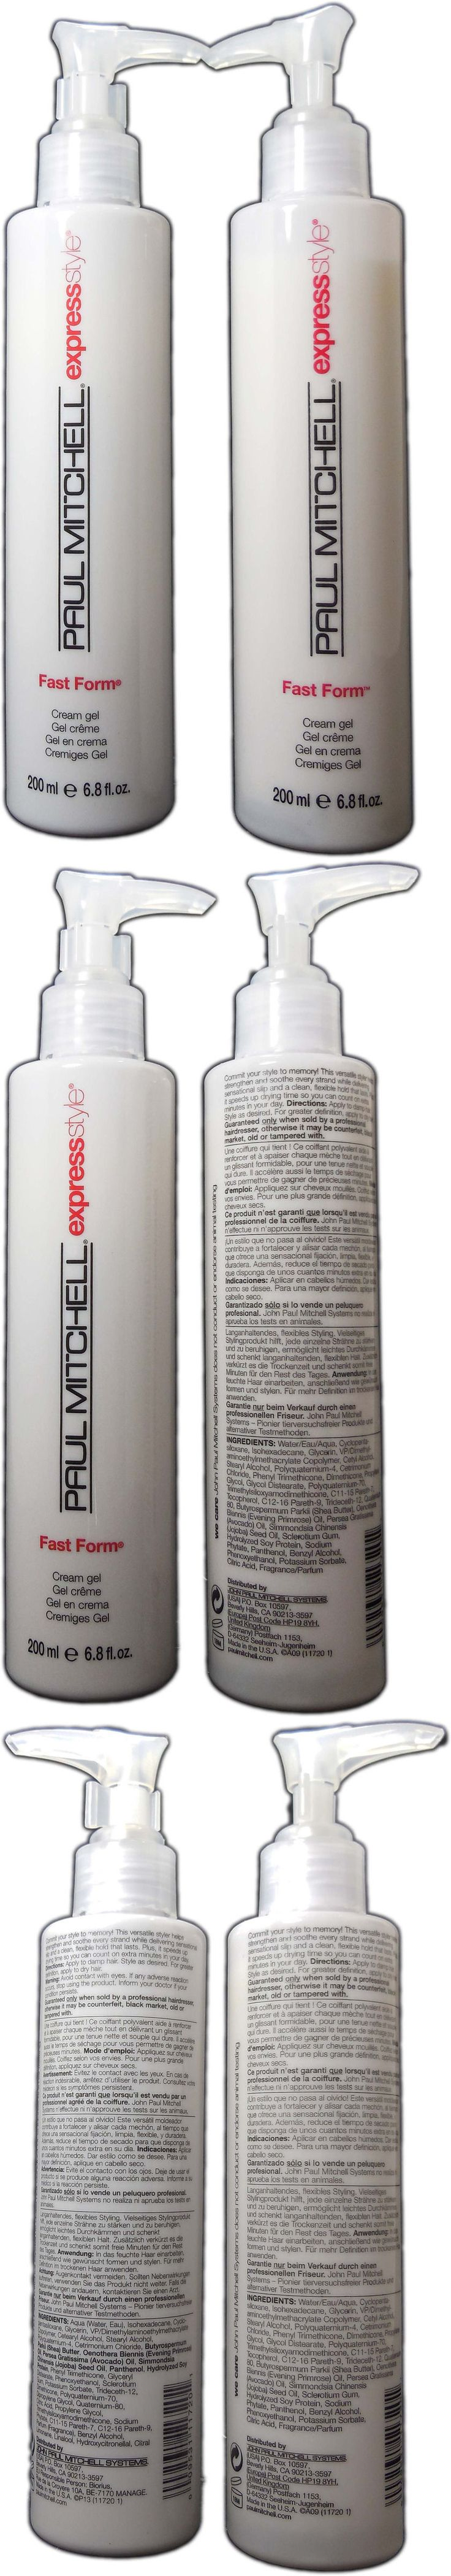 Sets and Kits: Paul Mitchell Express Style Fast Form 6.8Oz Pack Of 2 -> BUY IT NOW ONLY: $34.37 on eBay!